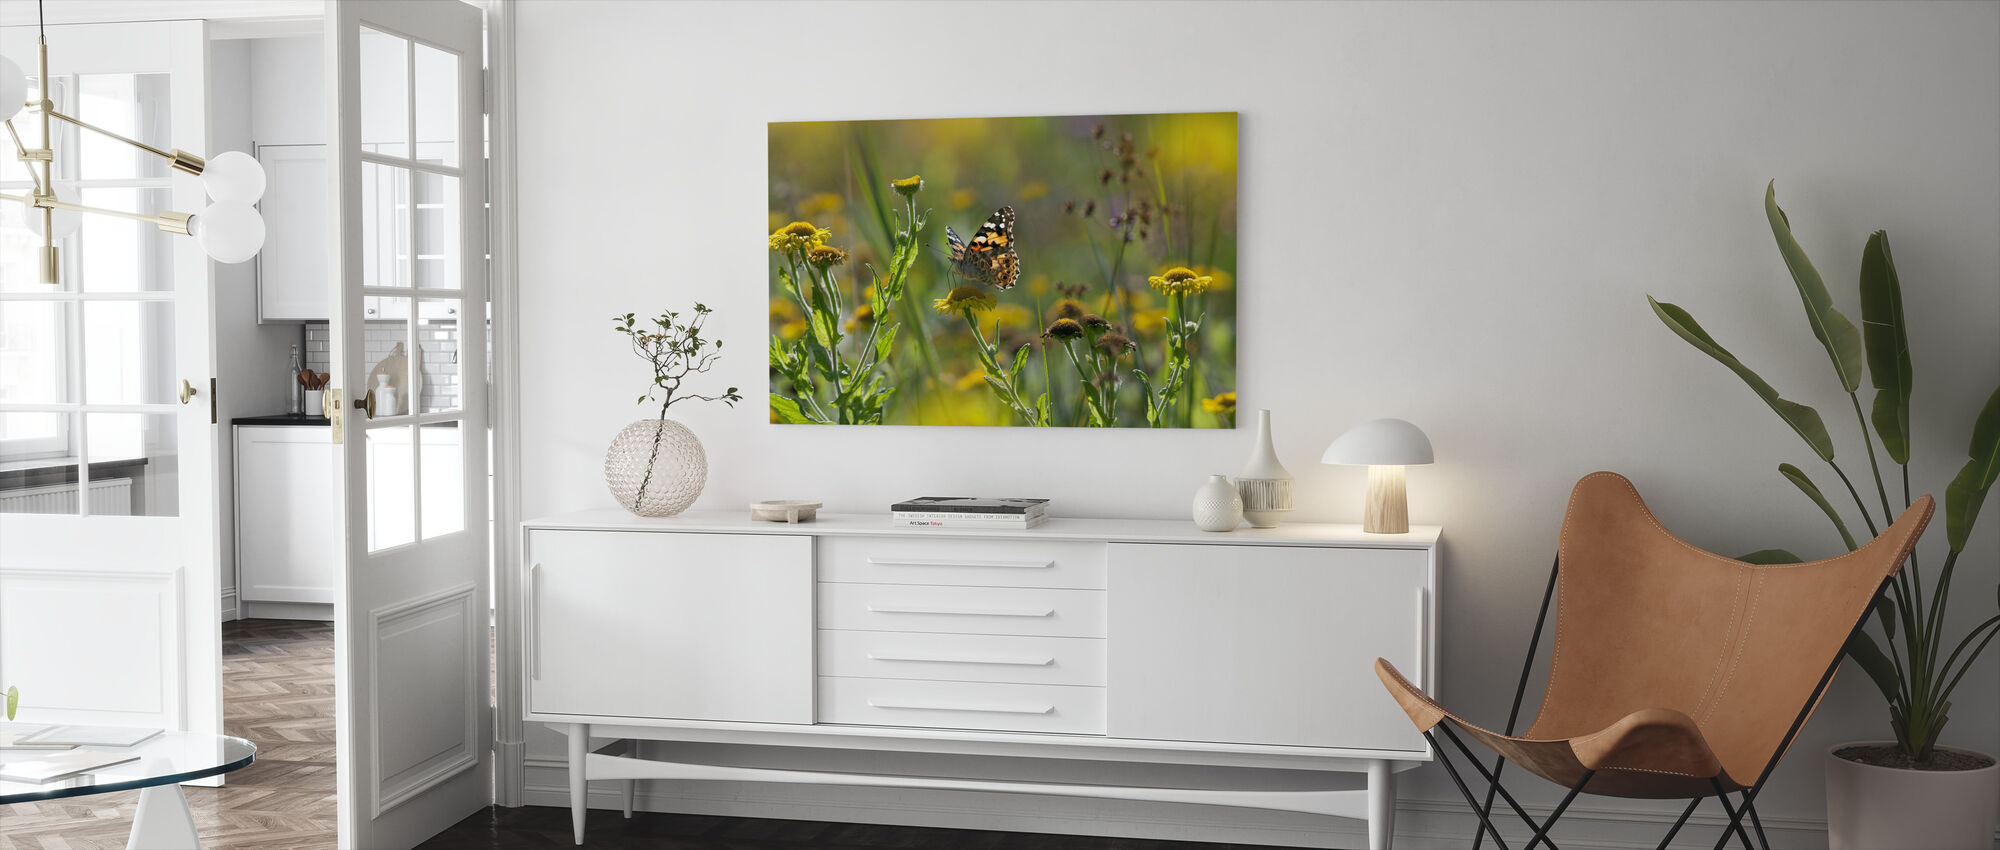 Painted Lady Butterfly - Canvas print - Living Room